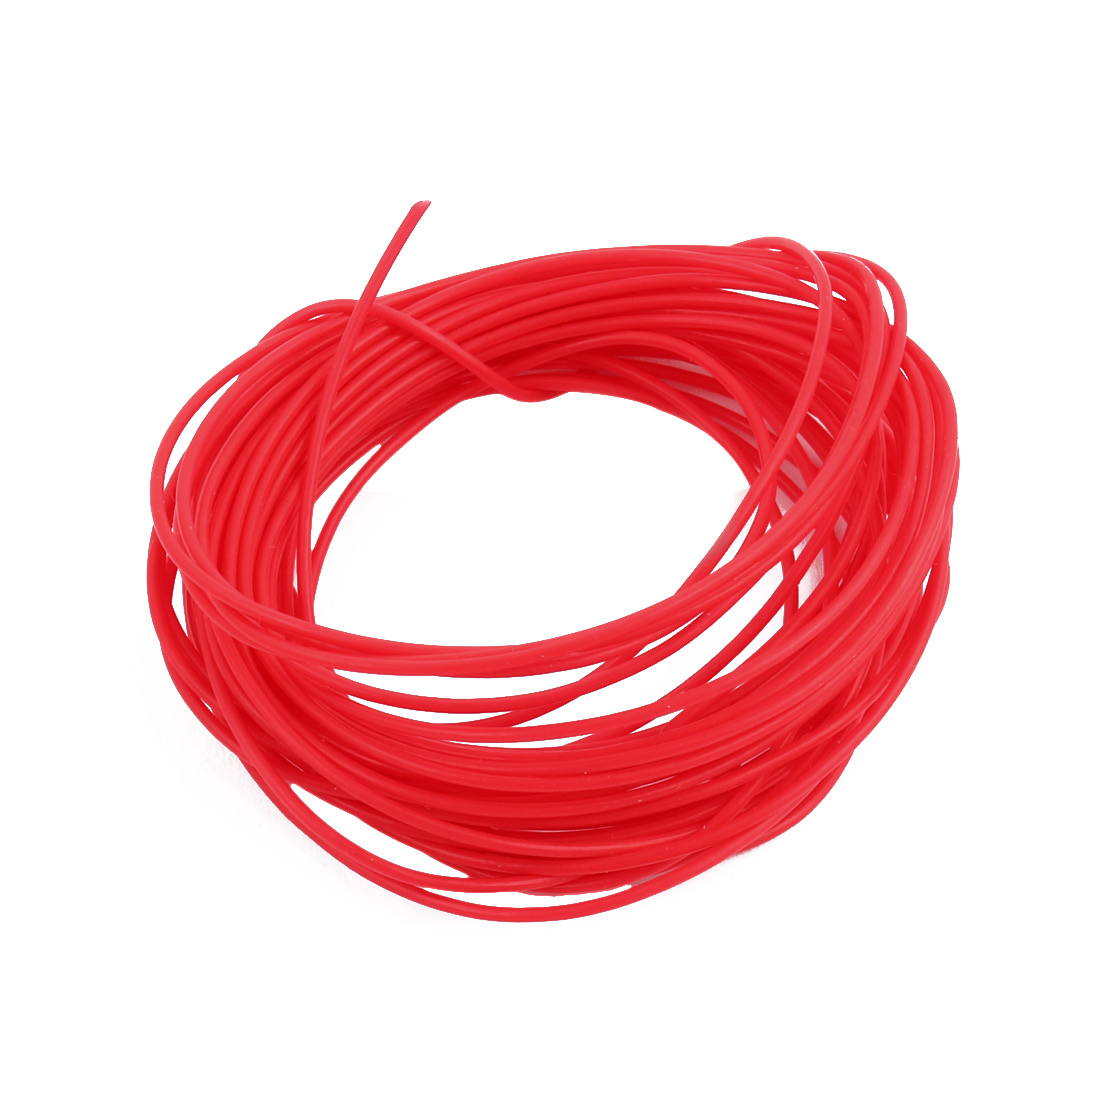 0.81mmx1.11mm PTFE Resistant High Temperature Red Tubing 5 Meters 16.4Ft